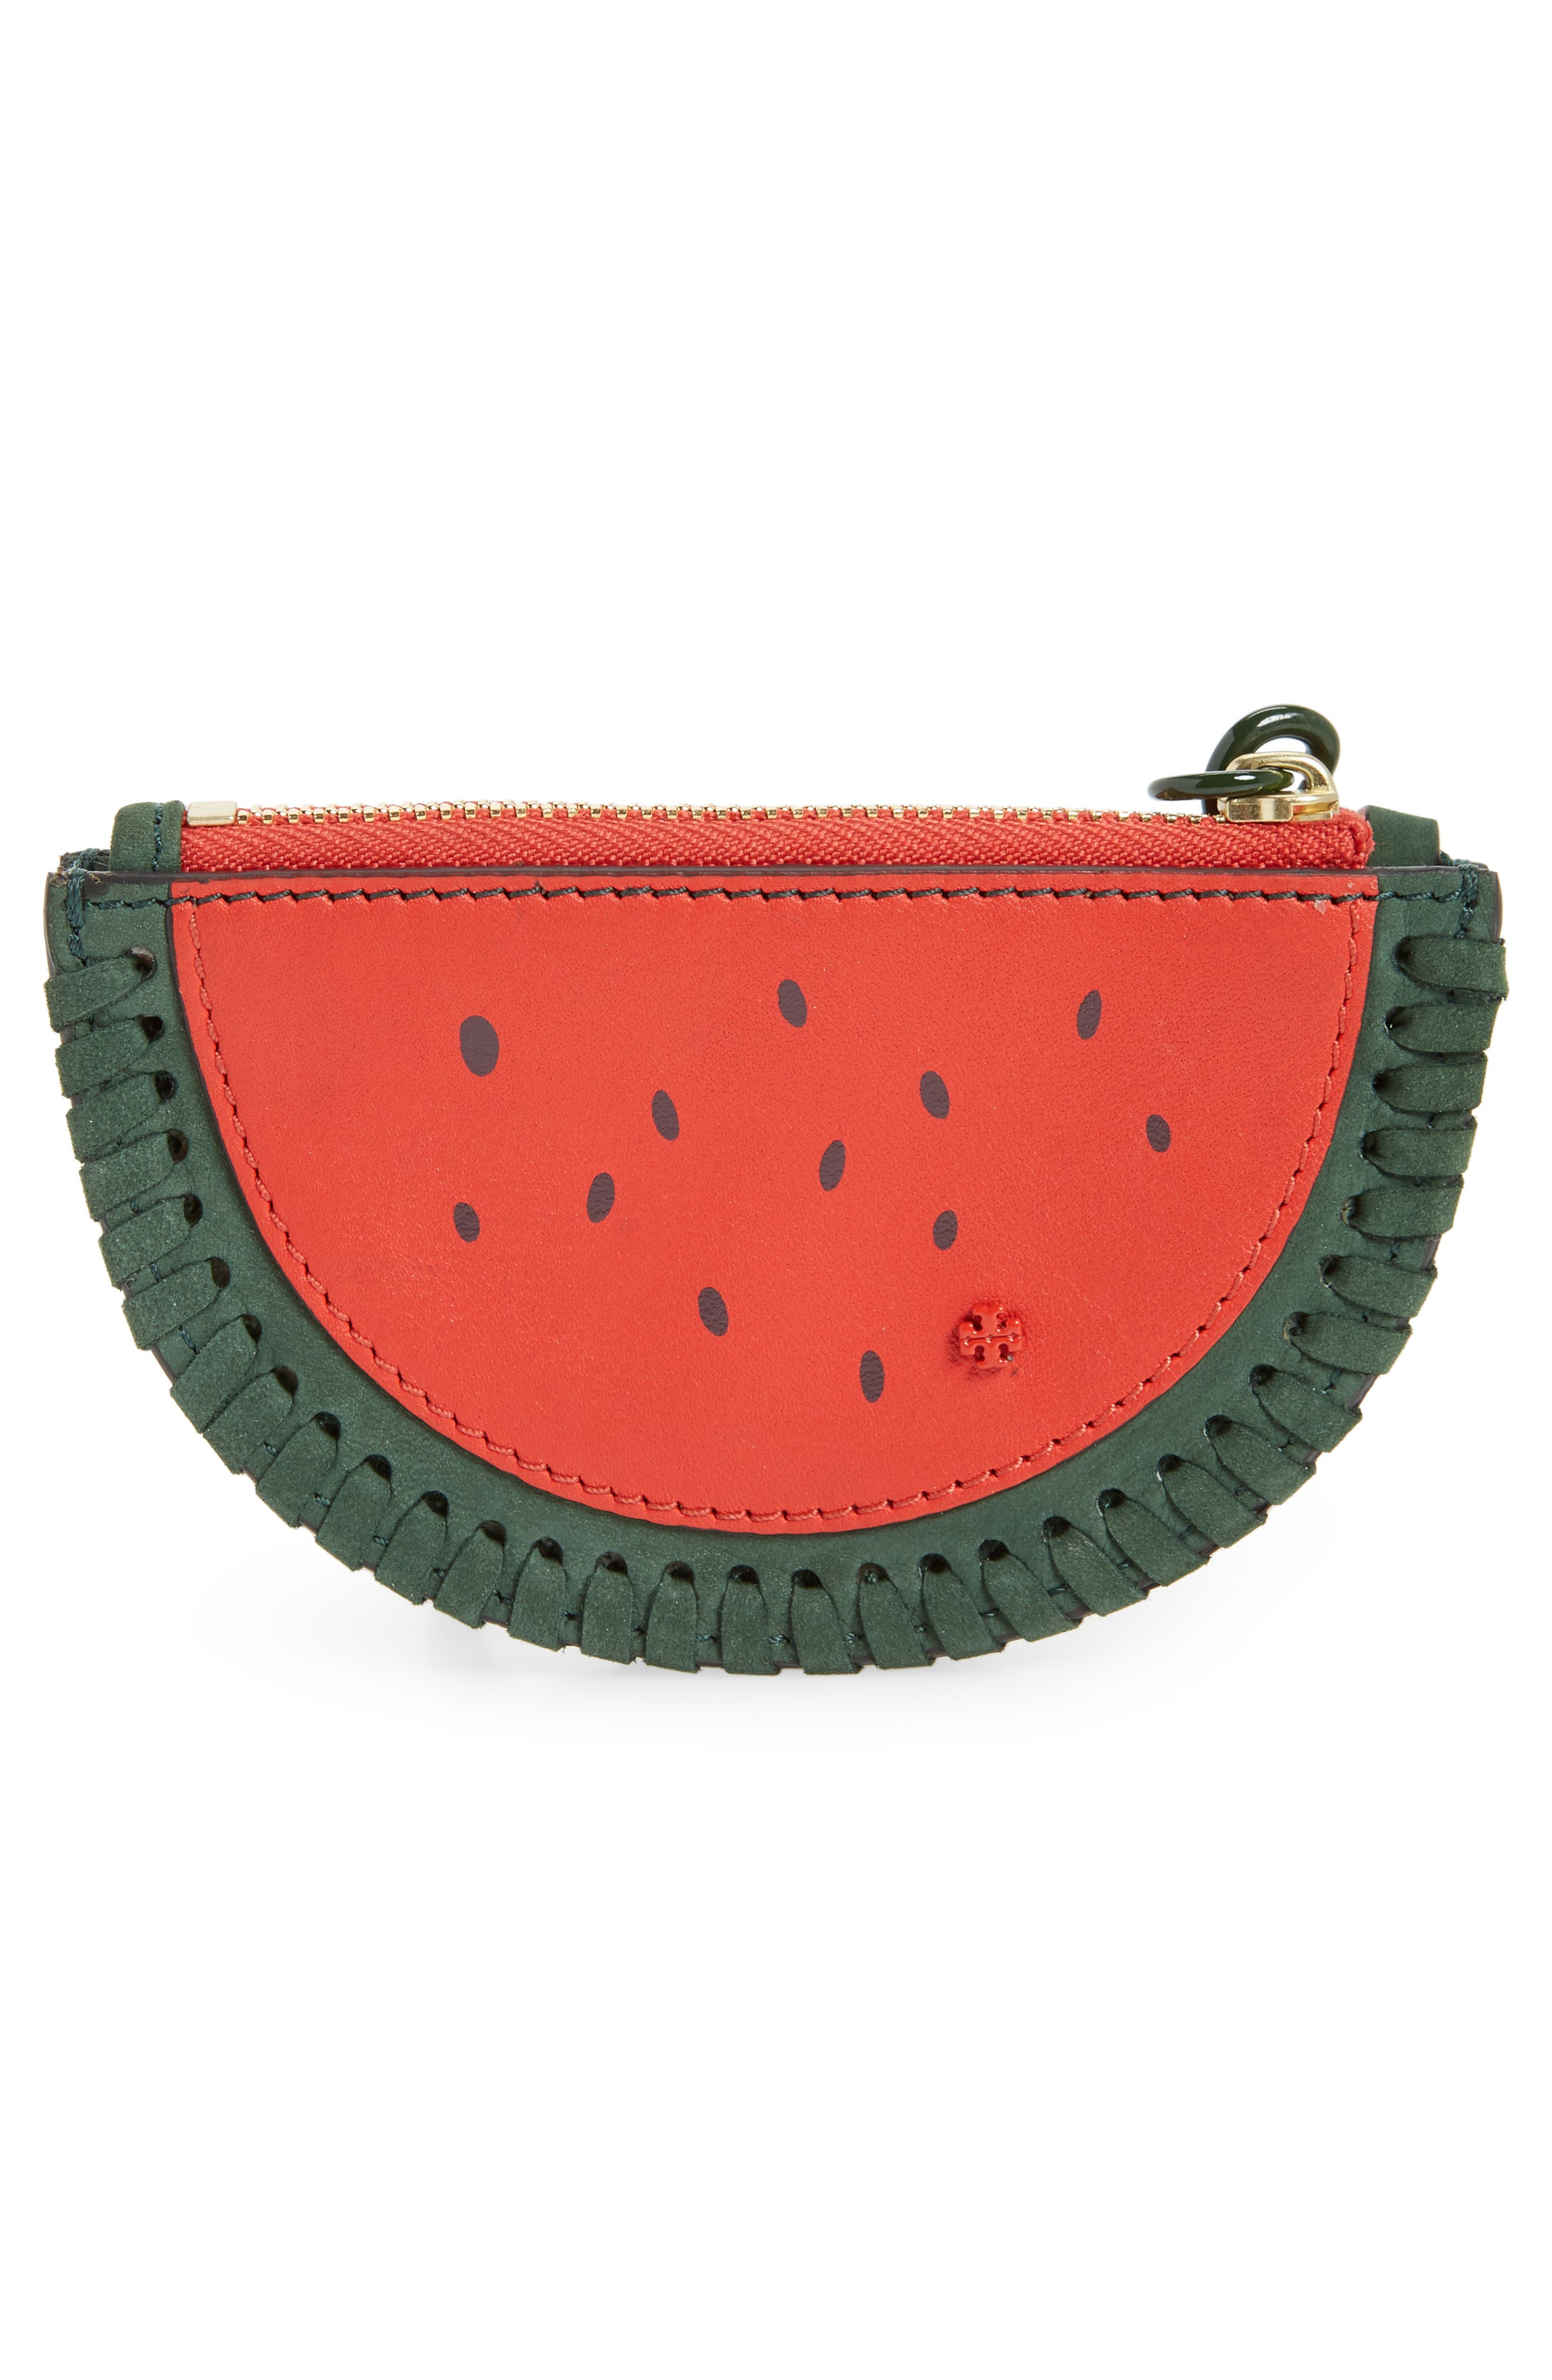 Watermelon Leather Coin Pouch,                             Alternate thumbnail 2, color,                             BANYAN GREEN / POPPY ORANGE